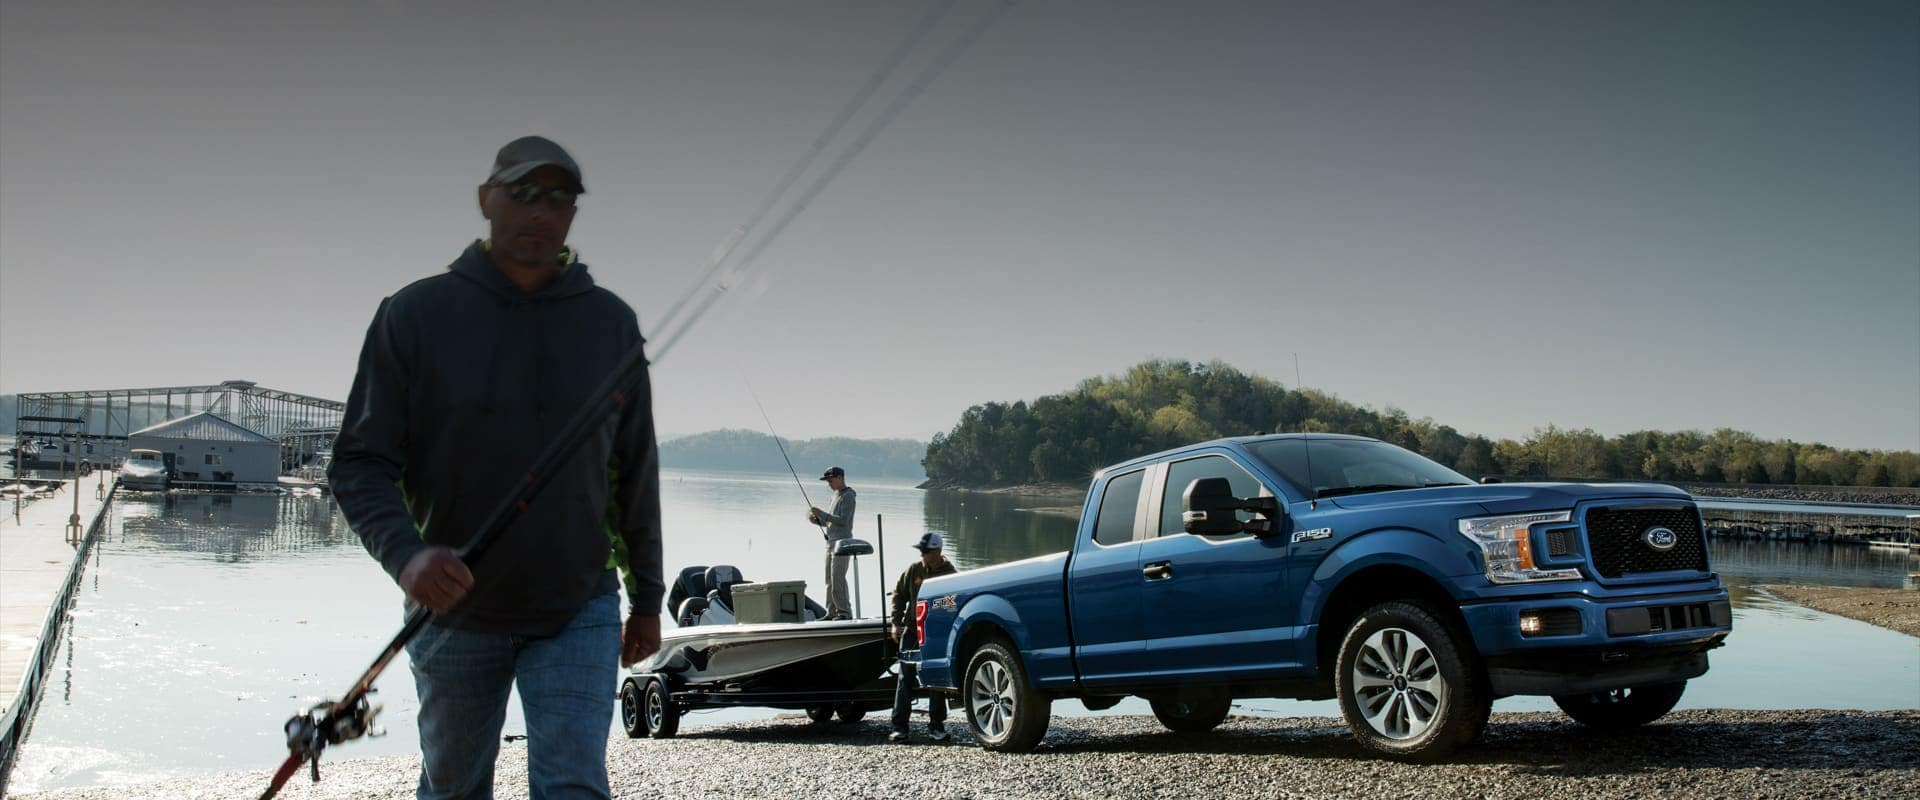 Three men are taking their blue Ford pick-up truck to go on a fishing trip